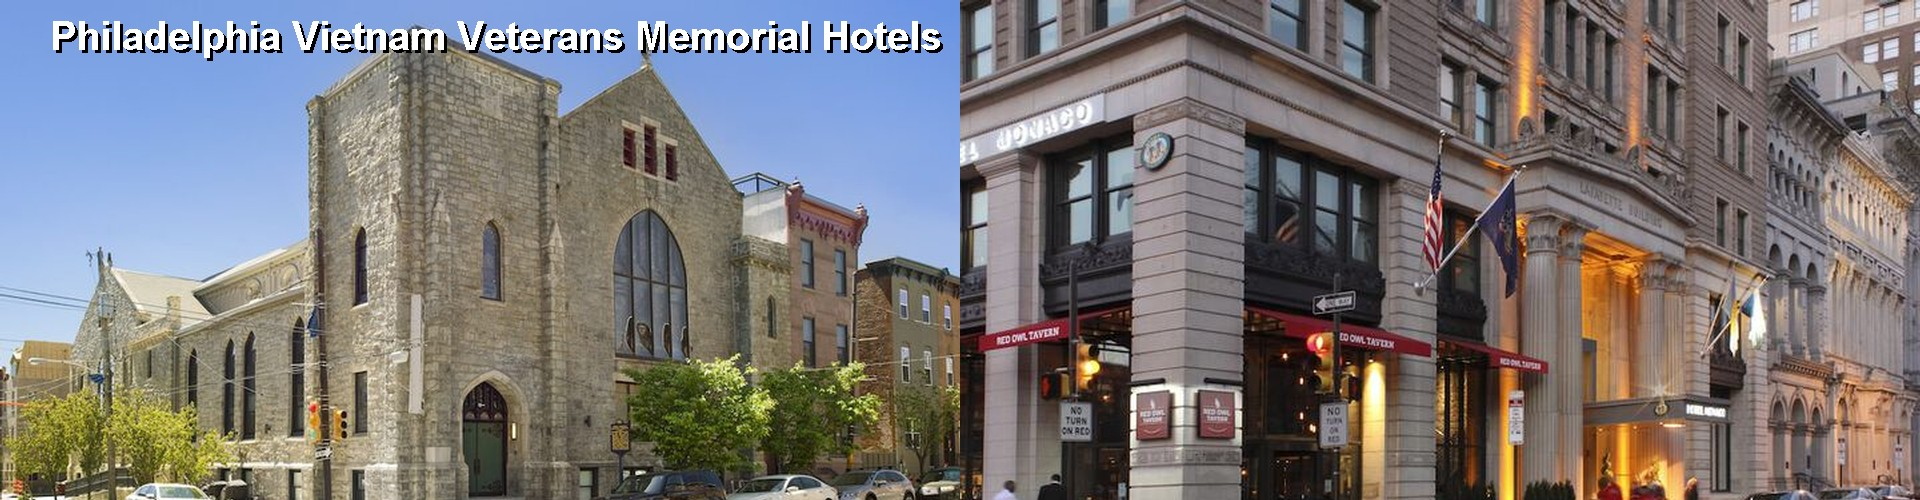 5 Best Hotels near Philadelphia Vietnam Veterans Memorial